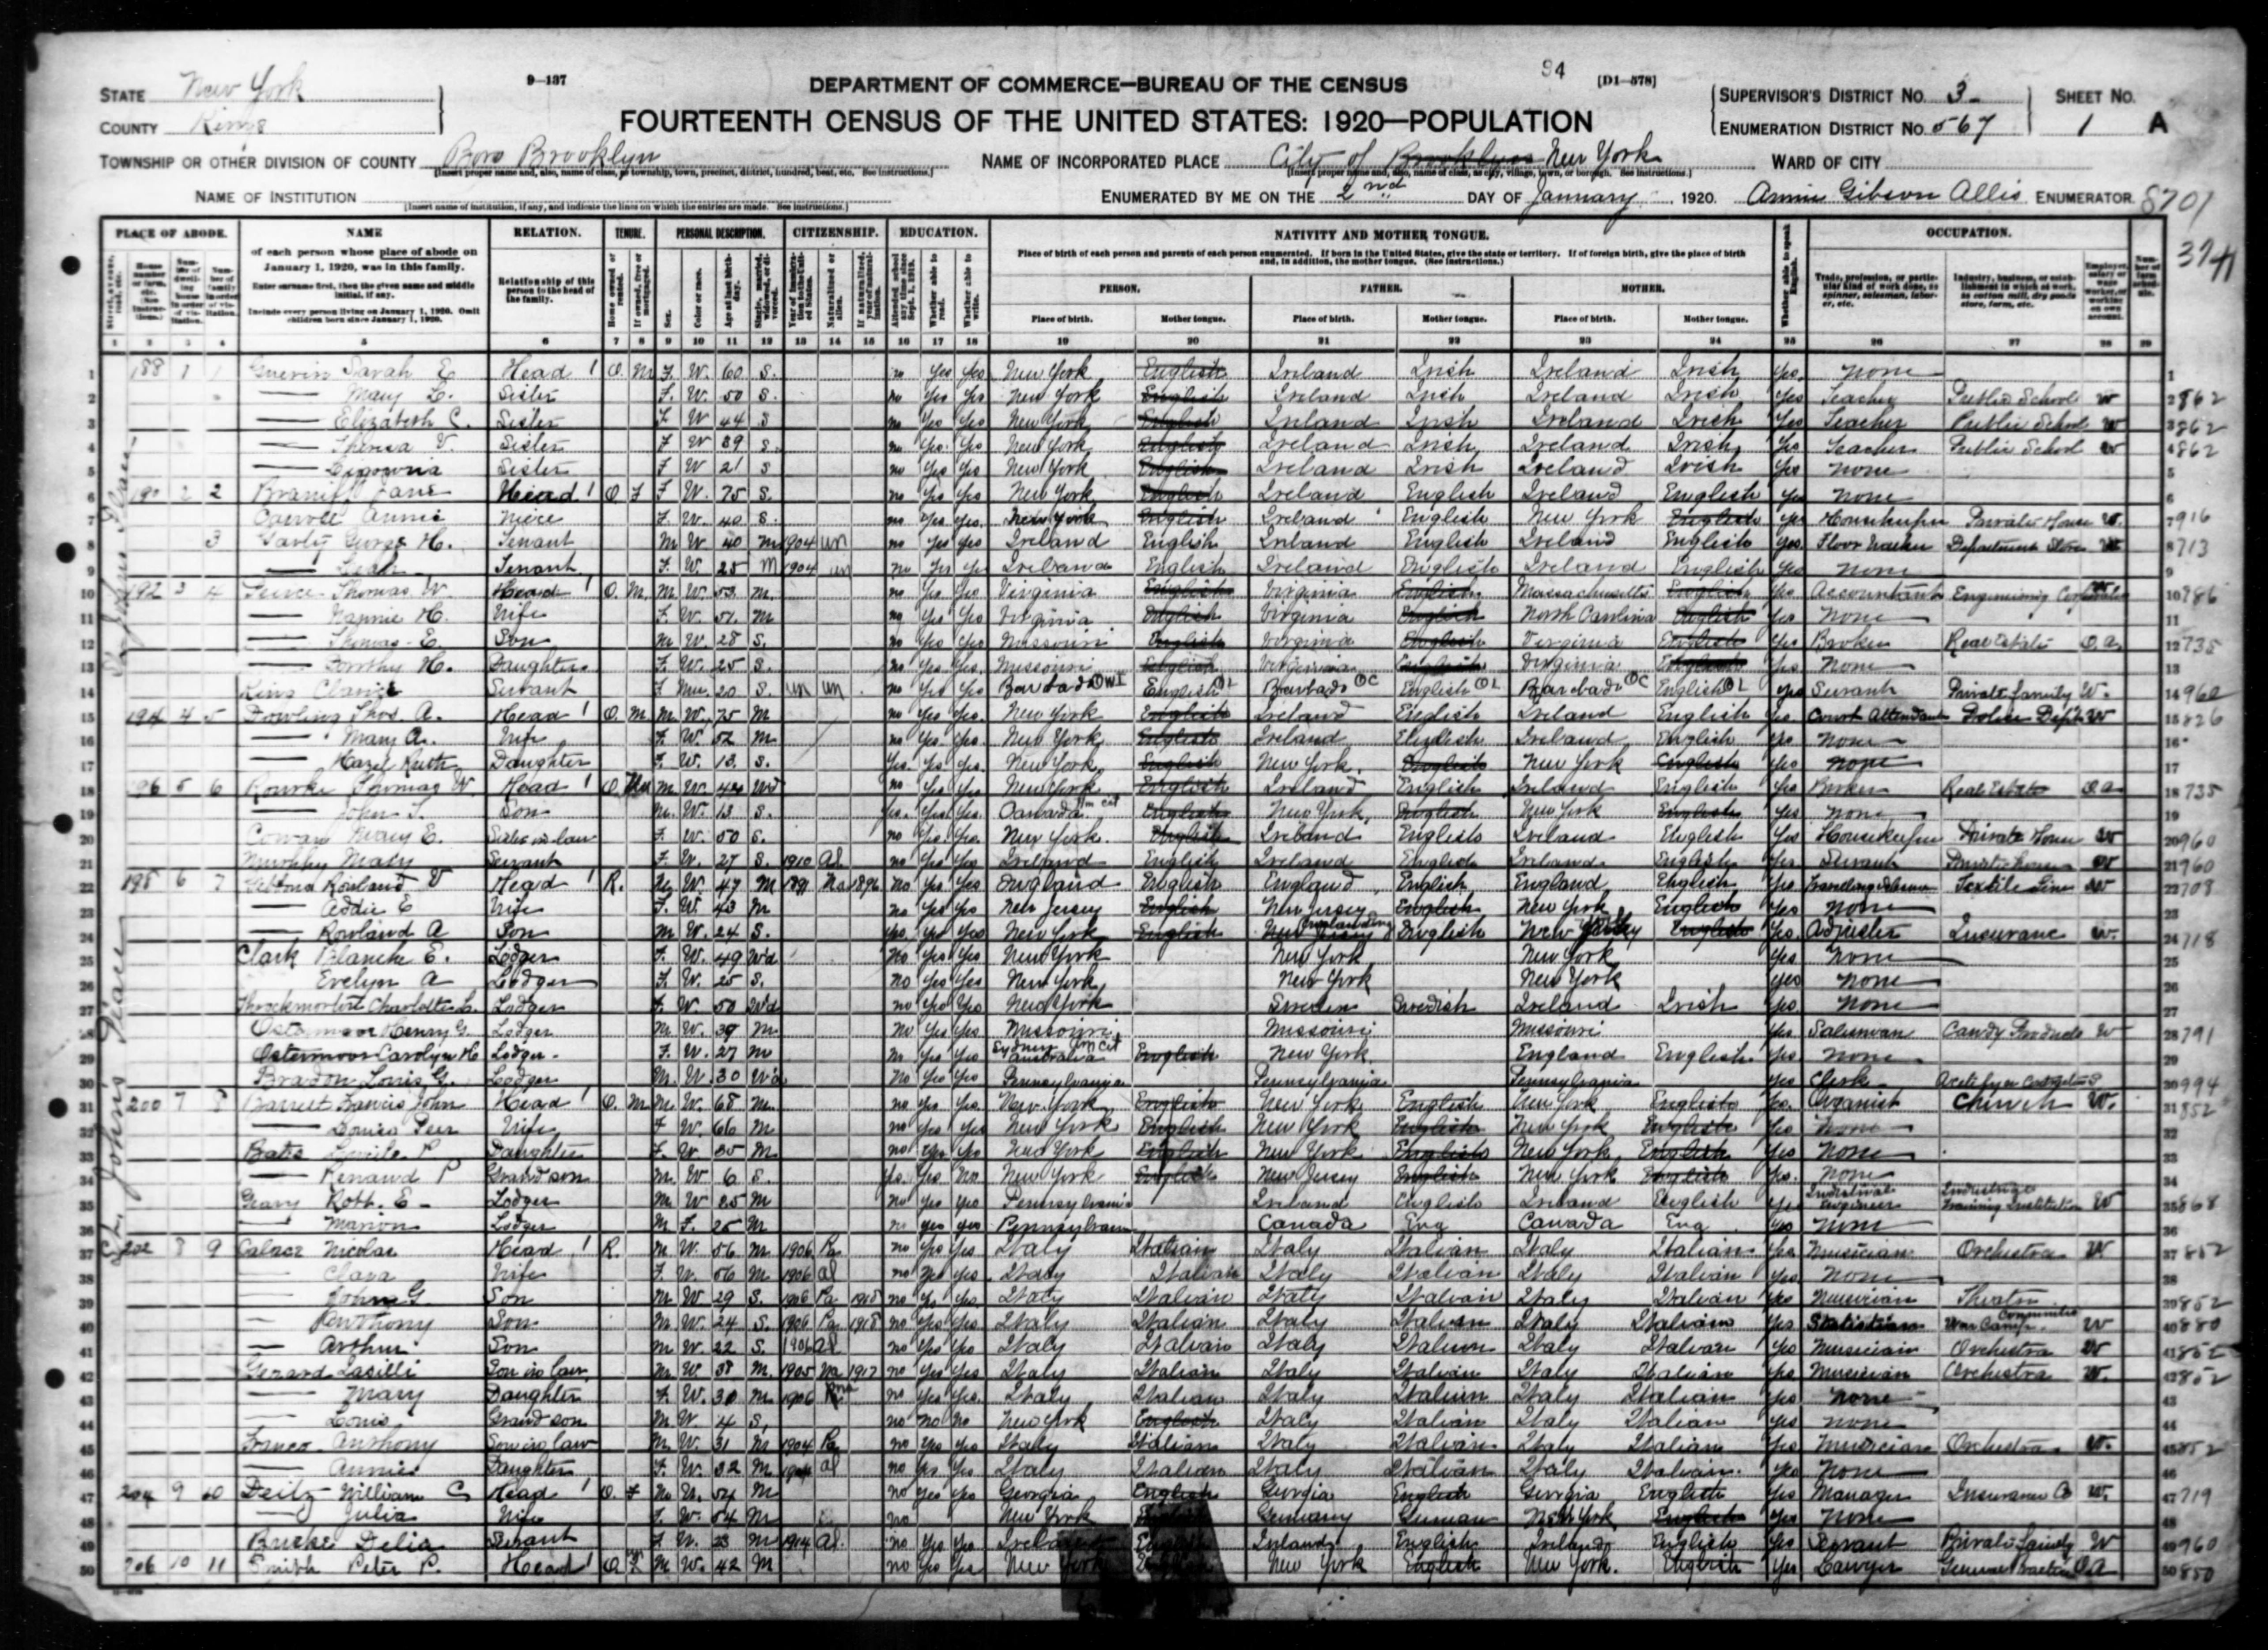 New York: KINGS County, Enumeration District 567, Sheet No. 1A